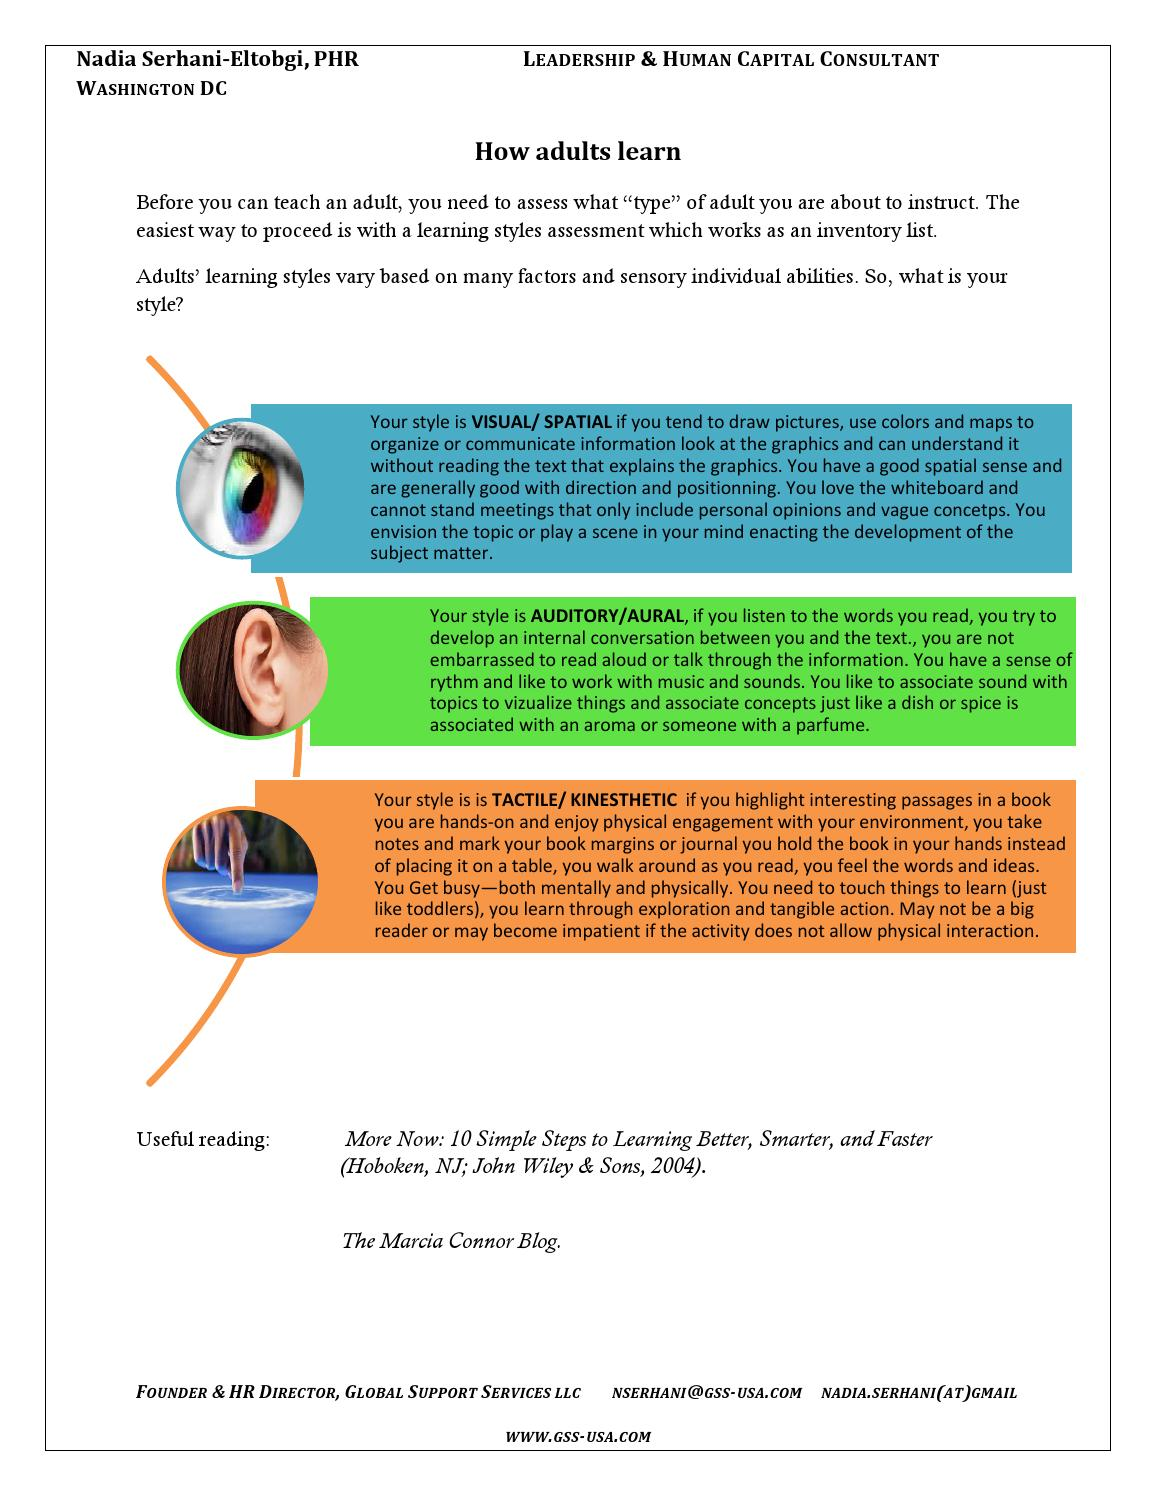 Your adult learning style